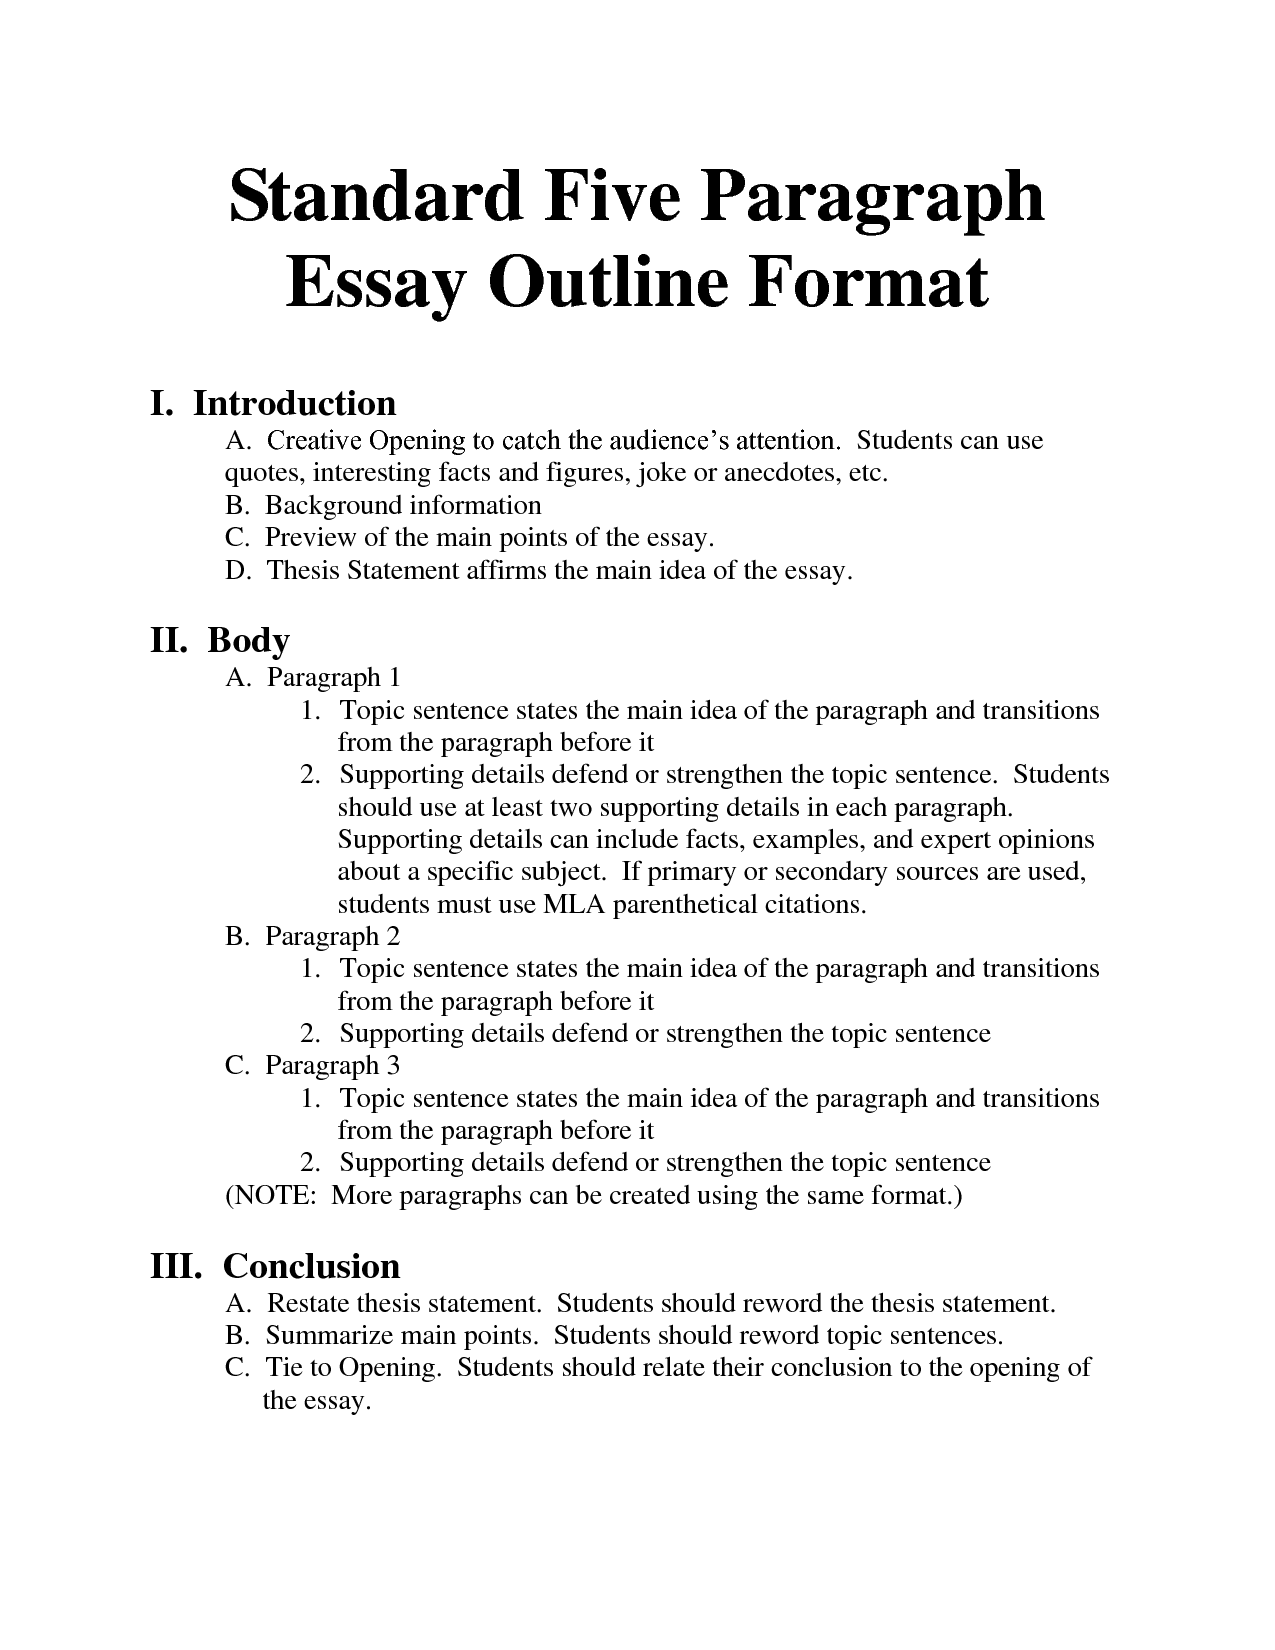 proper formatting for a research paper The college's guide to writing research papers contains a section on formatting papers here are some generic suggestions for formatting your paper.